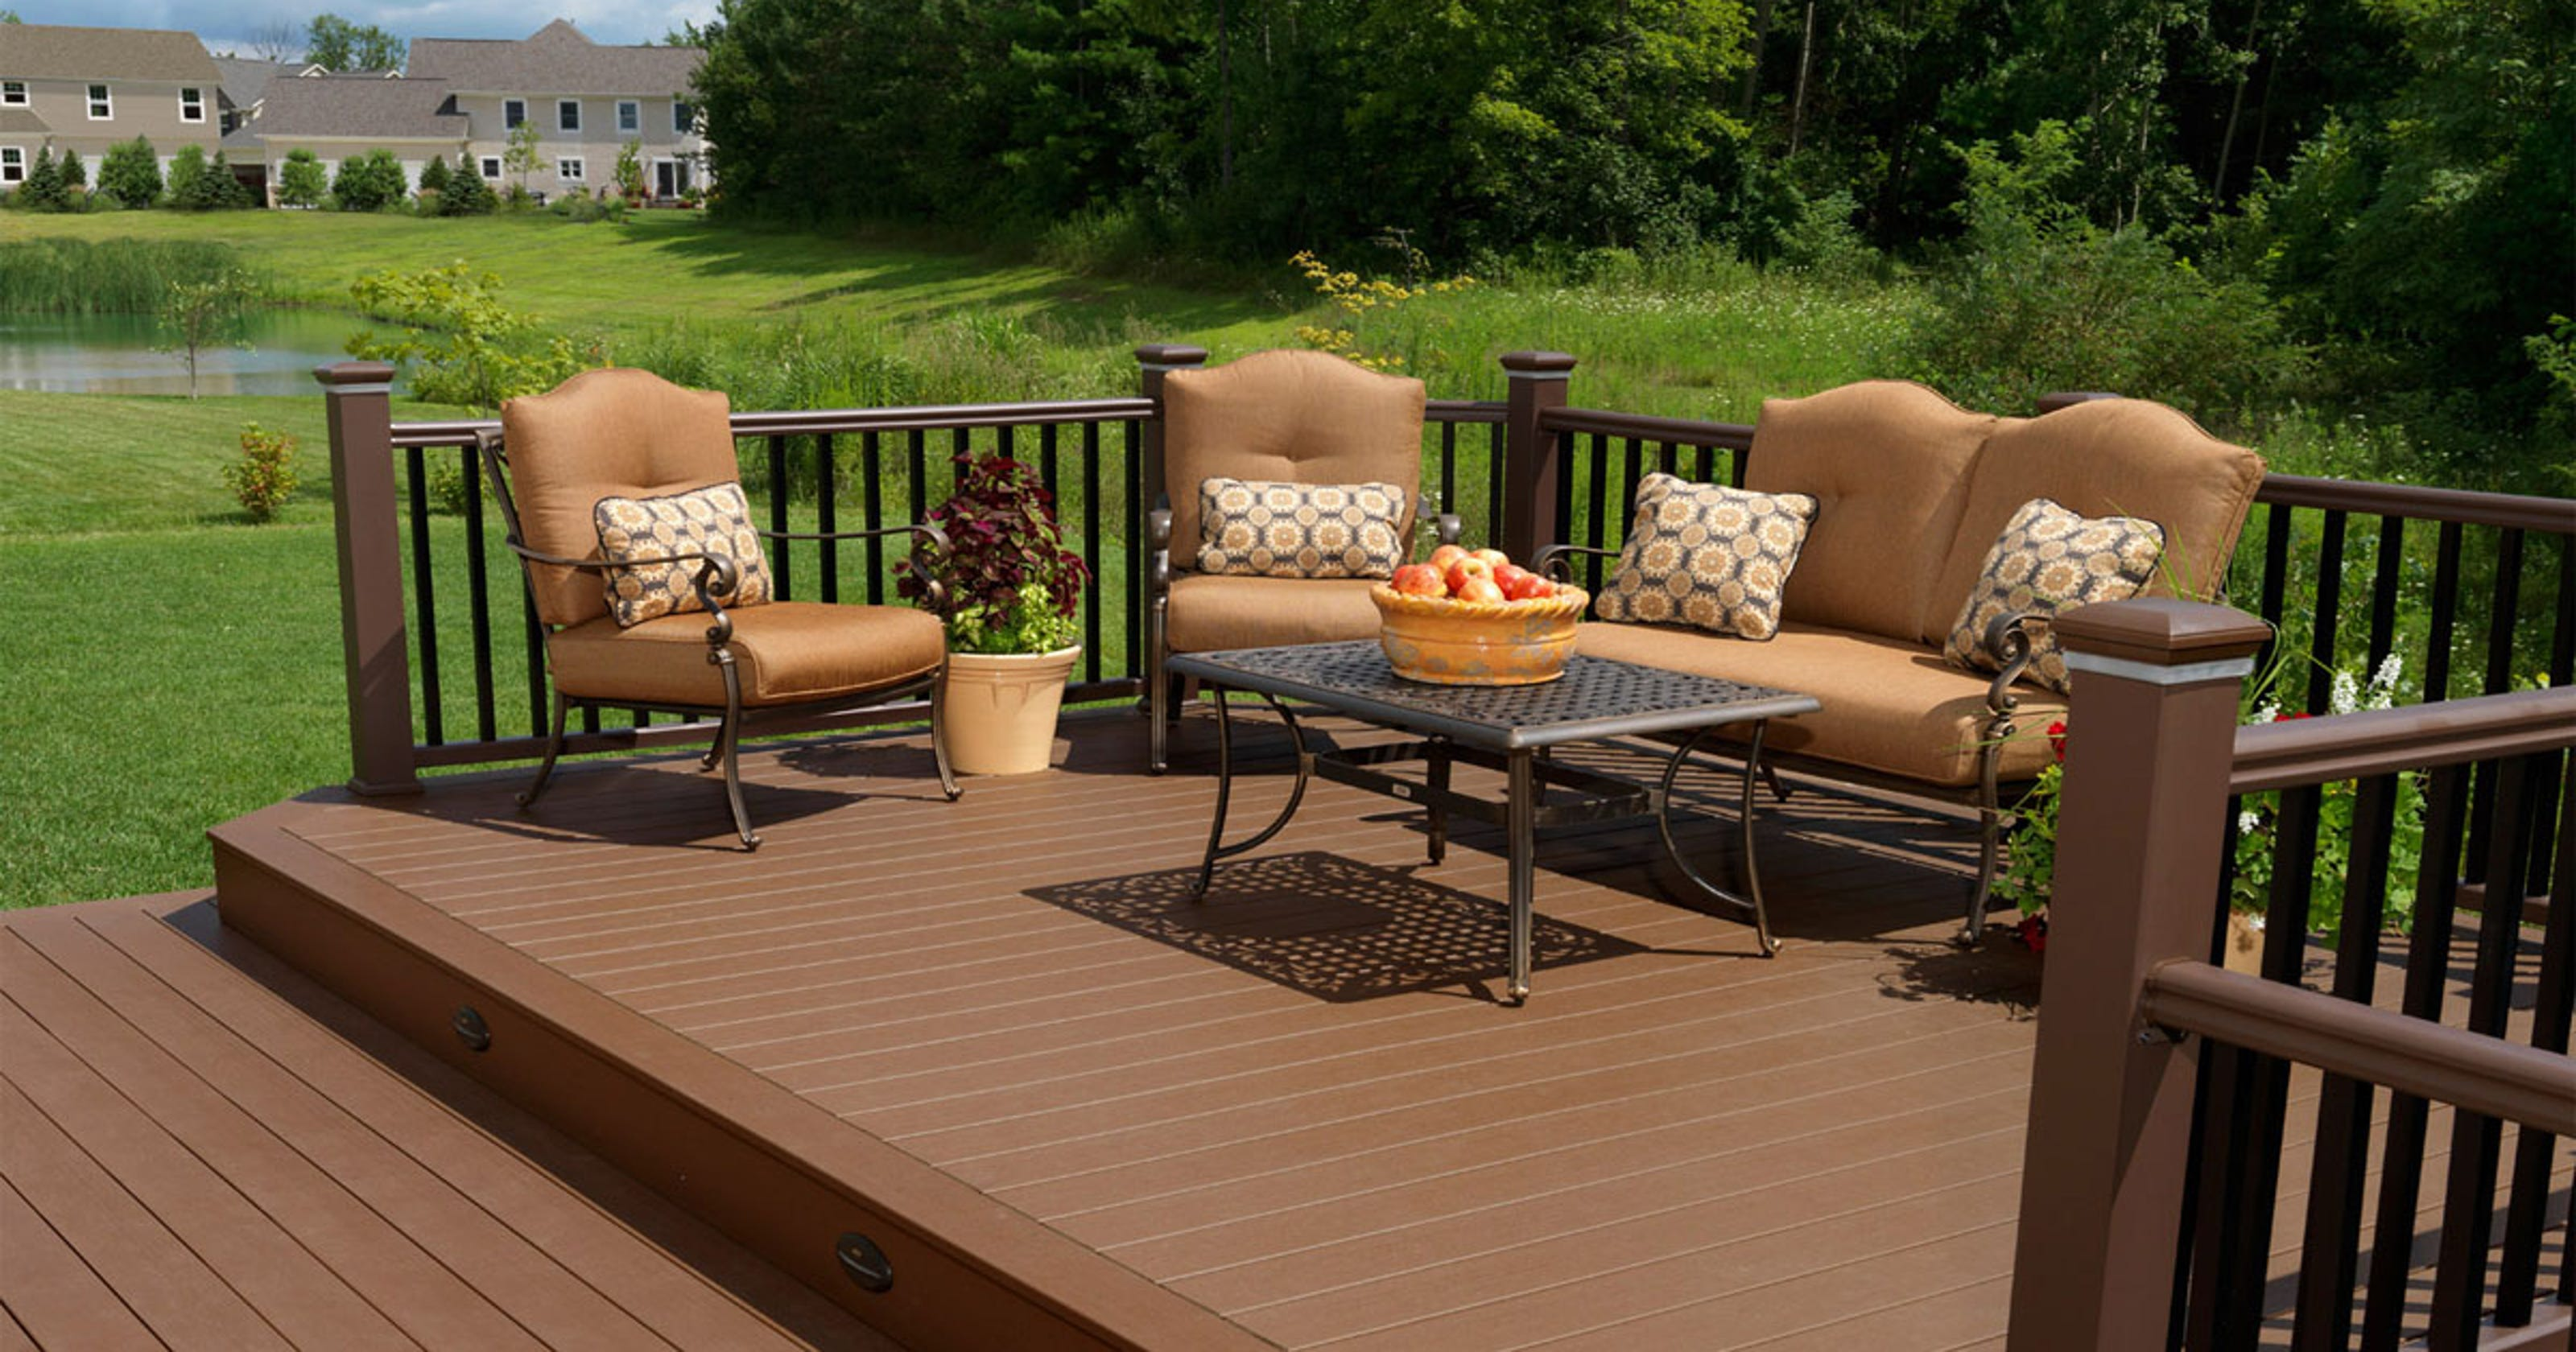 There Are Options If You Feel Pressured To Use Pressure Treated Wood For Your Deck